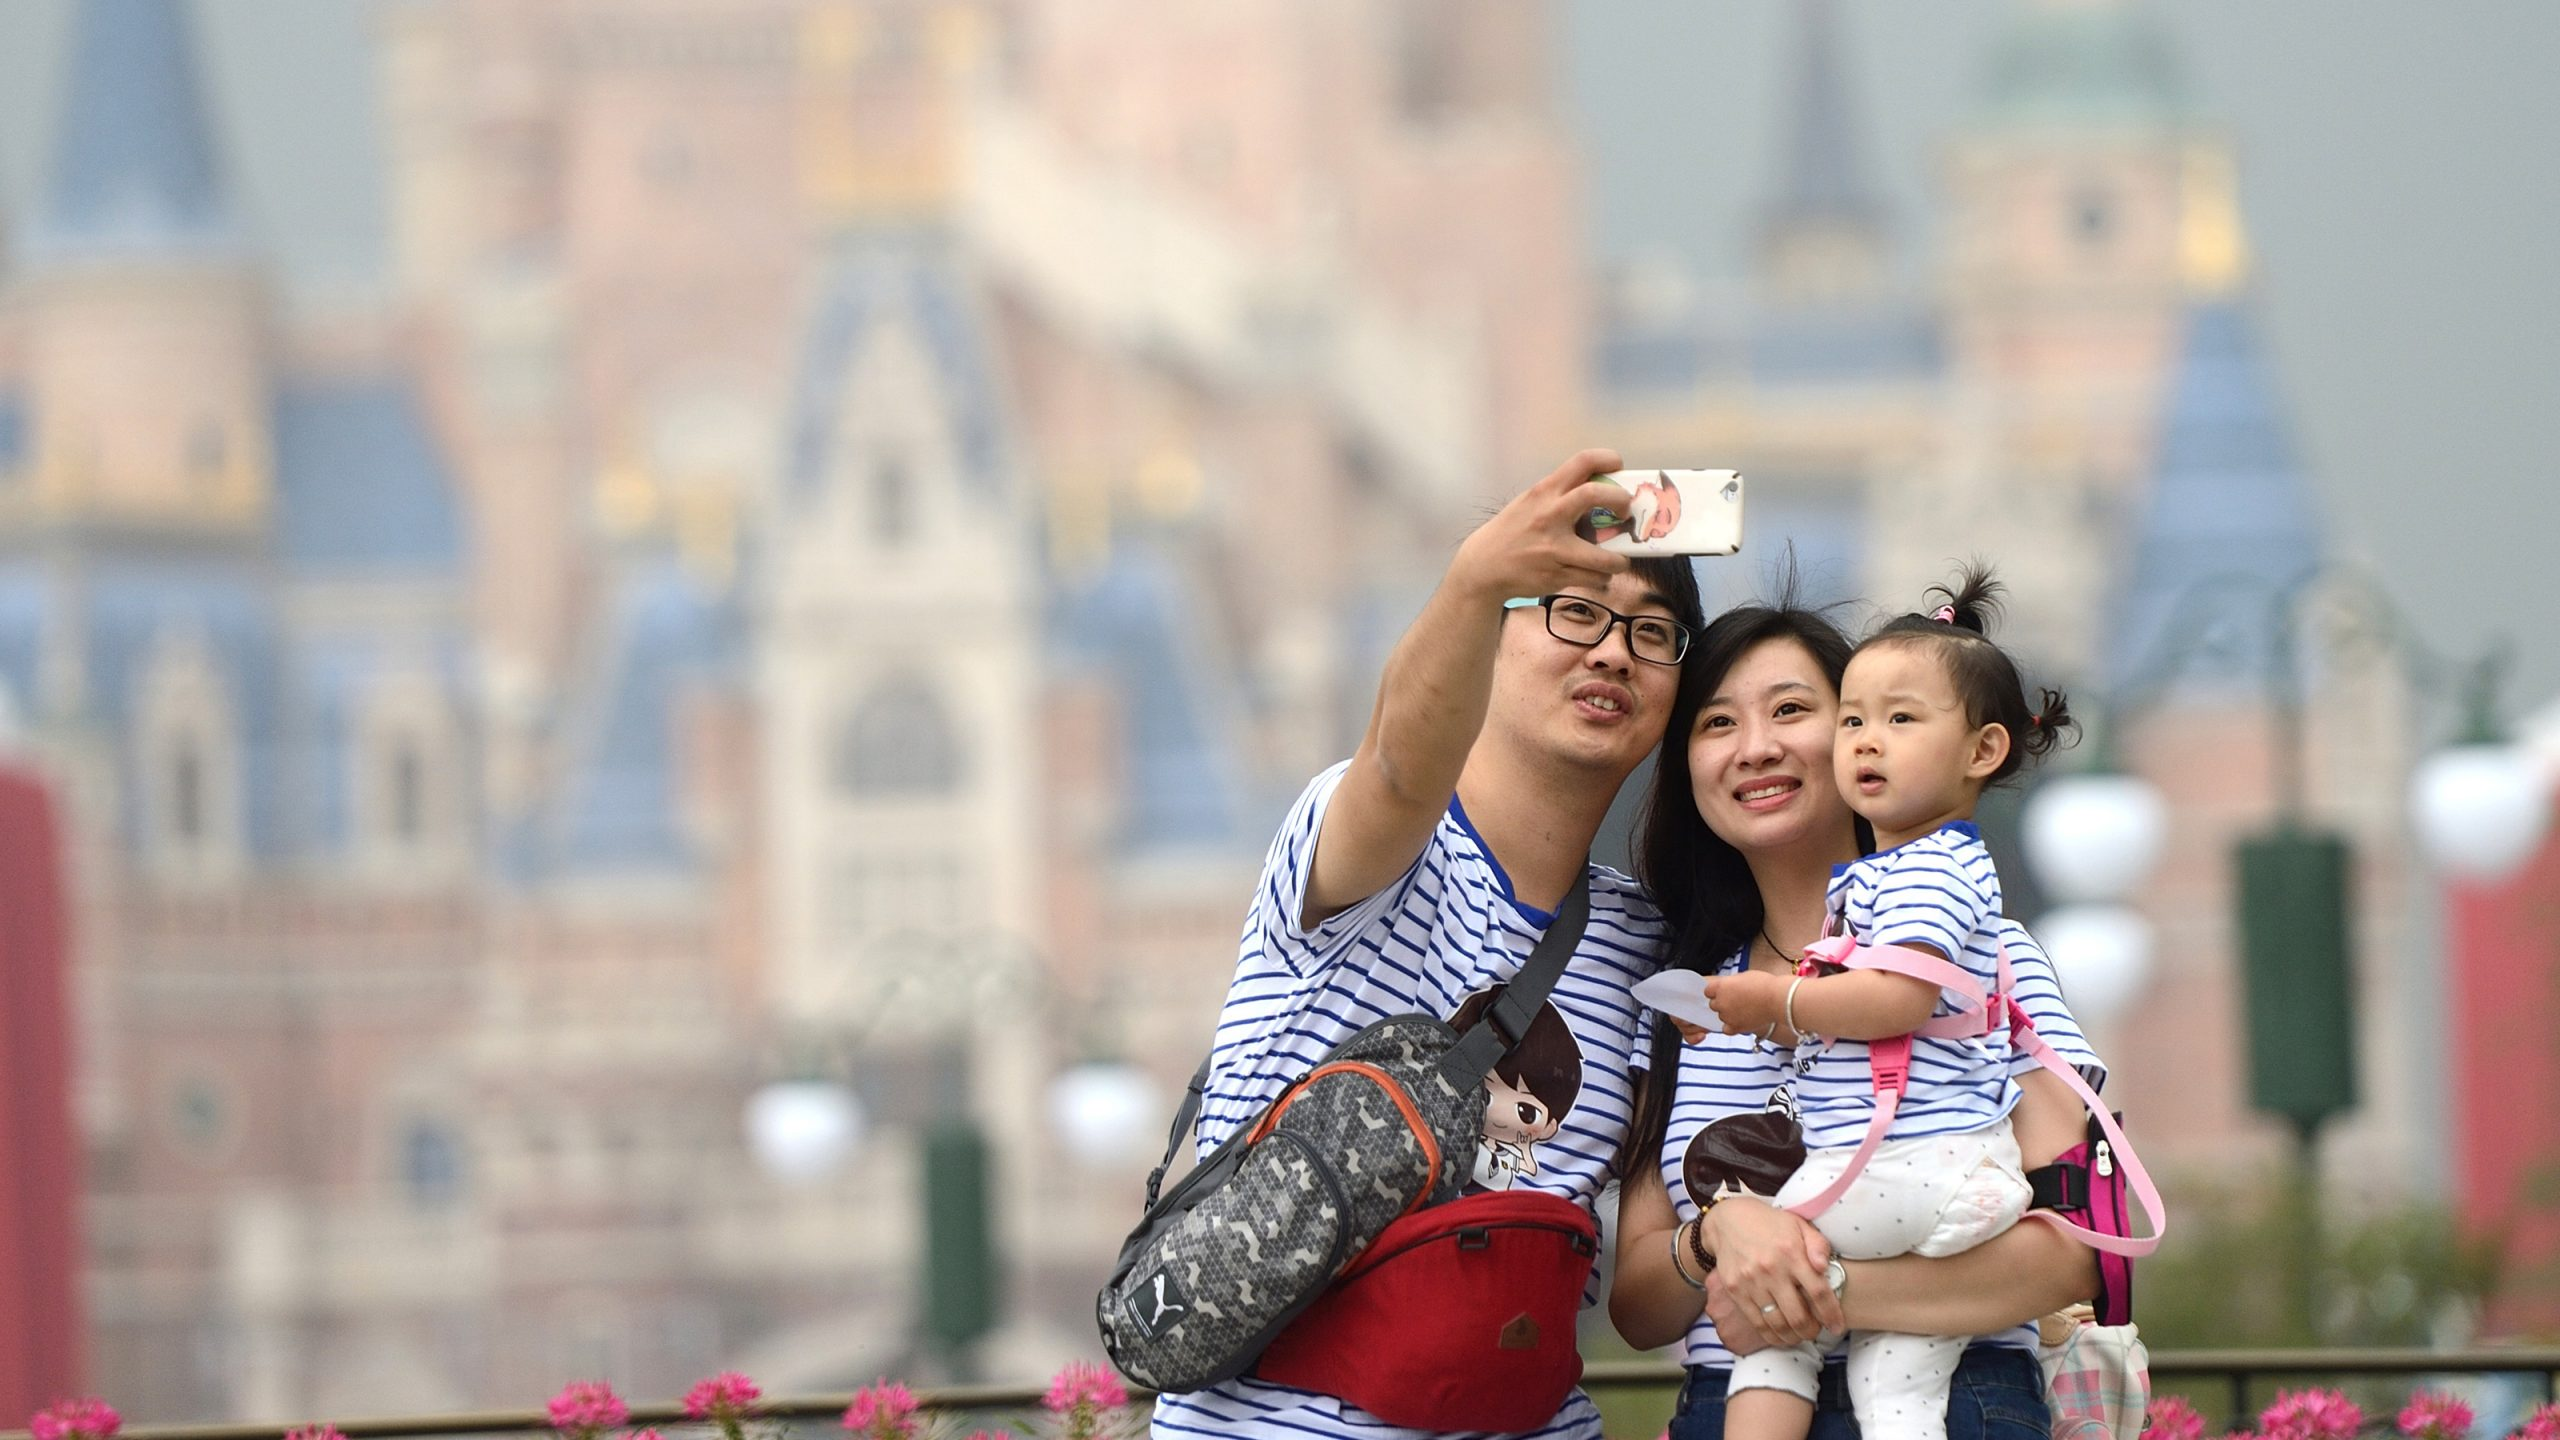 Trip.com: Where Do Chinese Tourists Want to Go When Pandemic is Over?